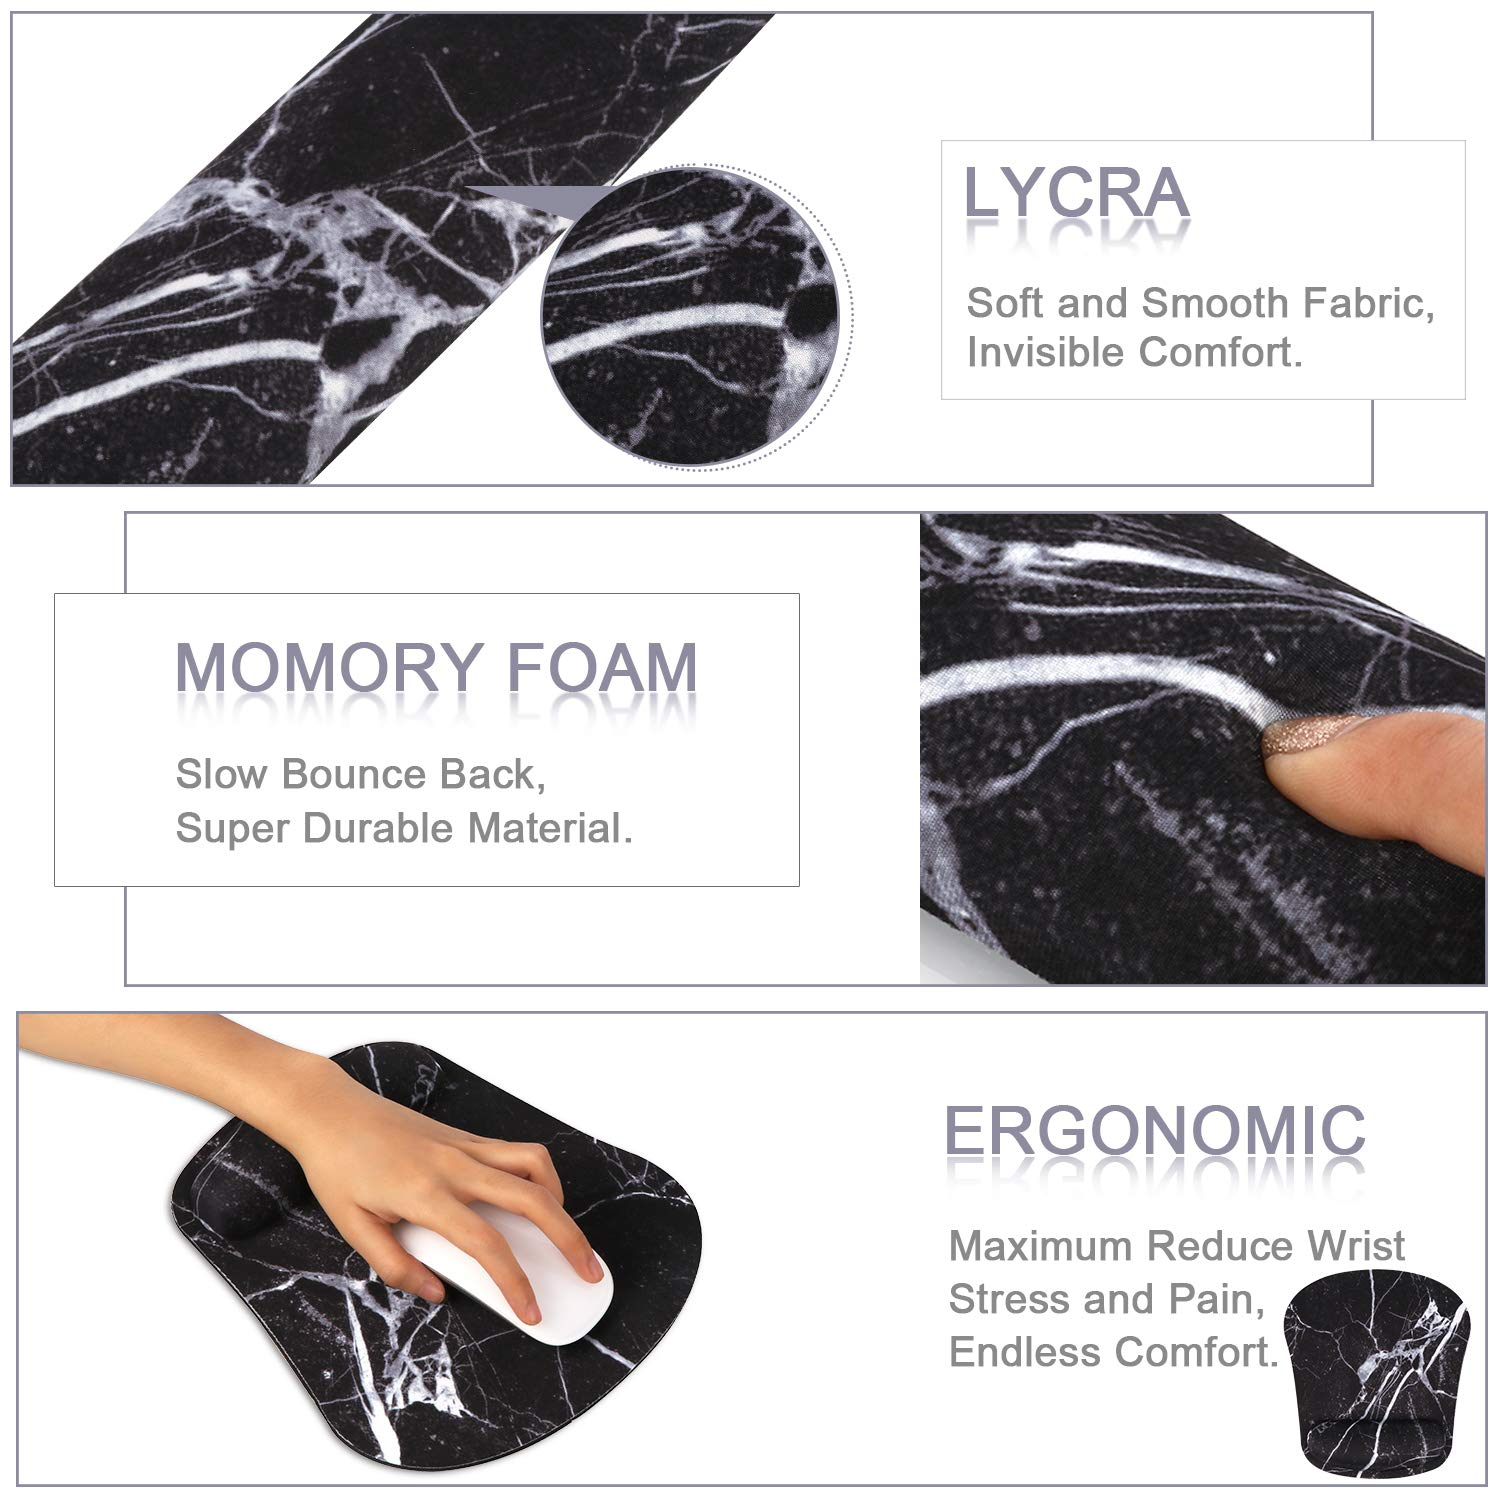 Artiron Keyboard Wrist Rest and Ergonomic Mouse Pad with Wrist Support Memory Foam Filled Non Slip Base Easy Typing and Relieve Wrist Pain for Computer Office Laptop Black Marble Gradient